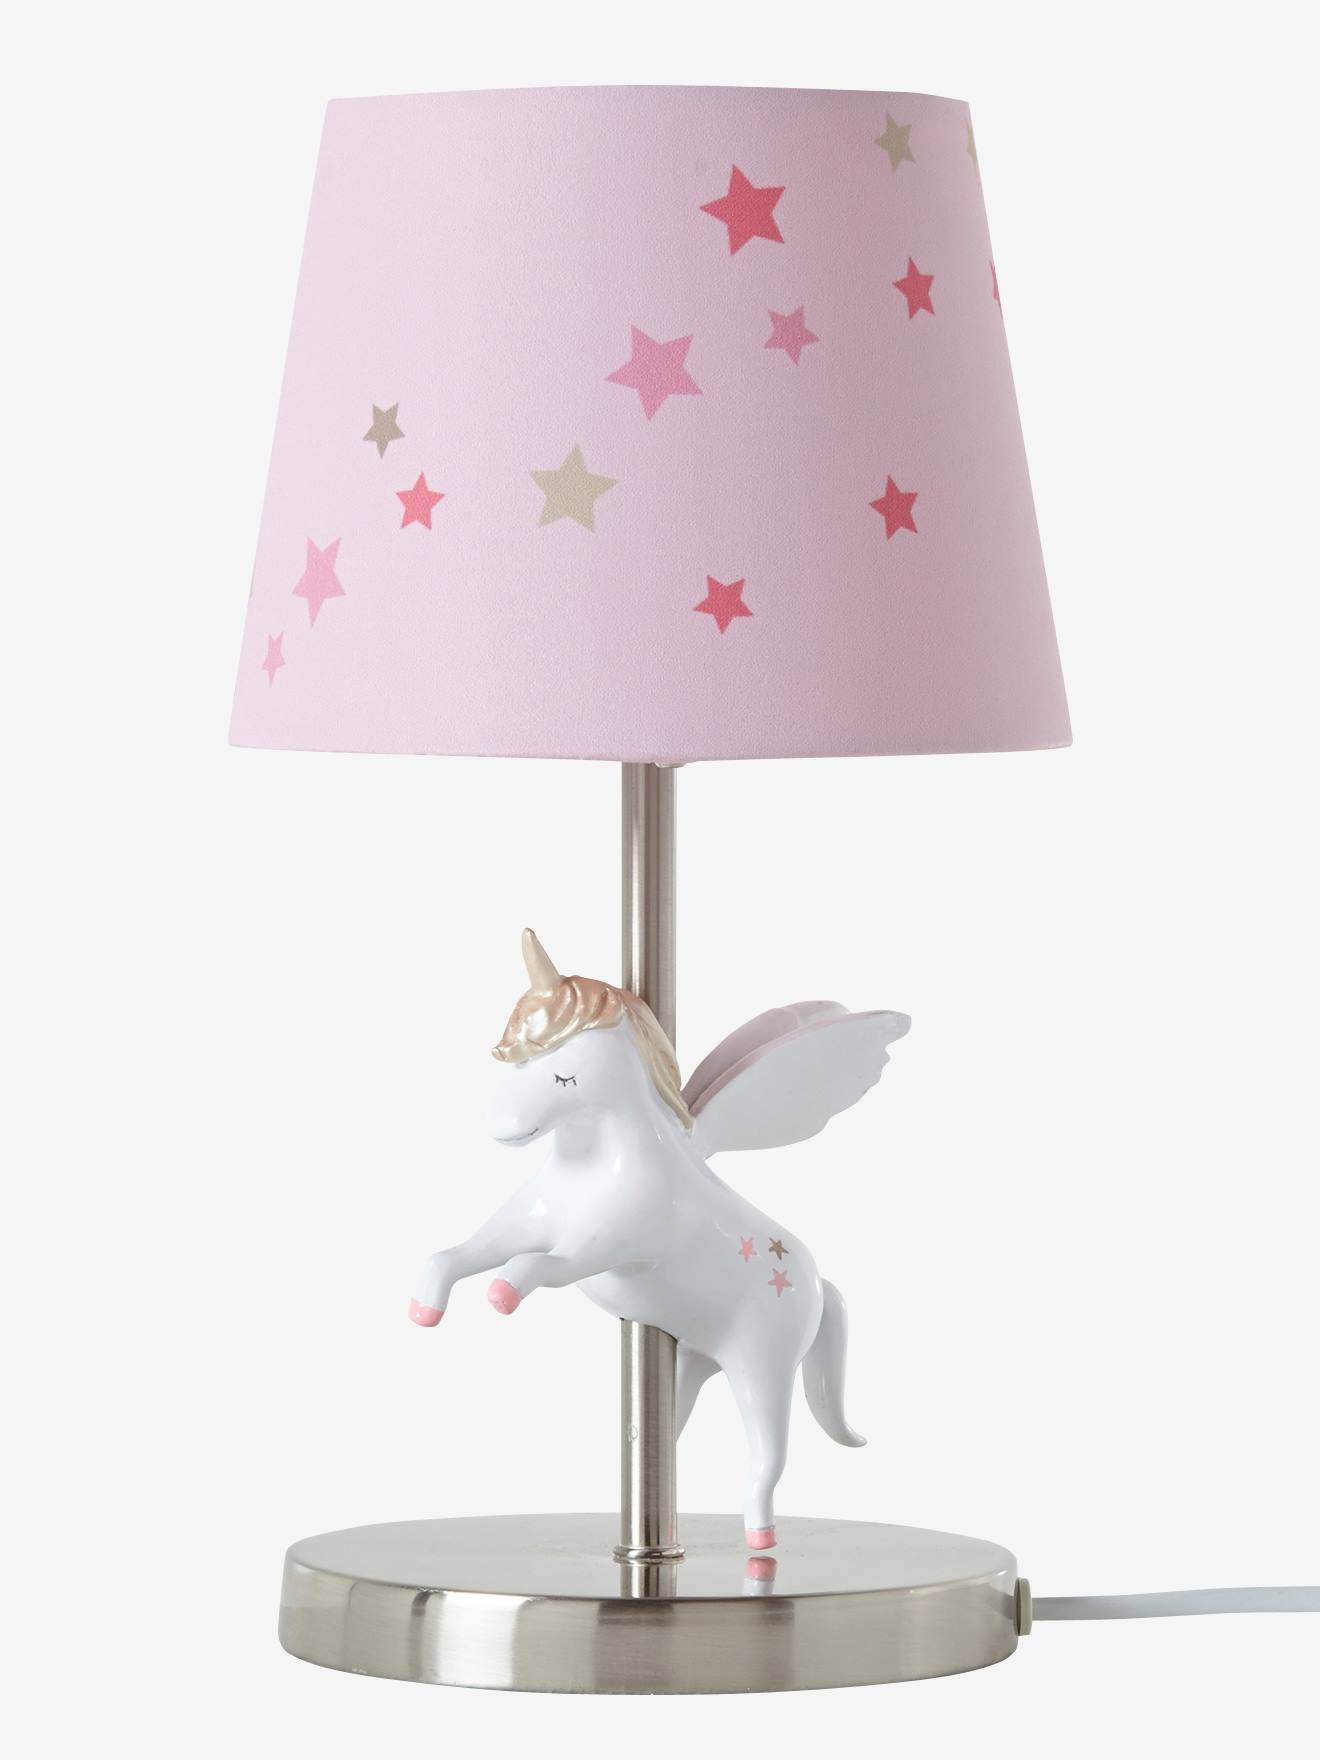 vertbaudet kinder nachttischlampe mit einhorn in rosa. Black Bedroom Furniture Sets. Home Design Ideas